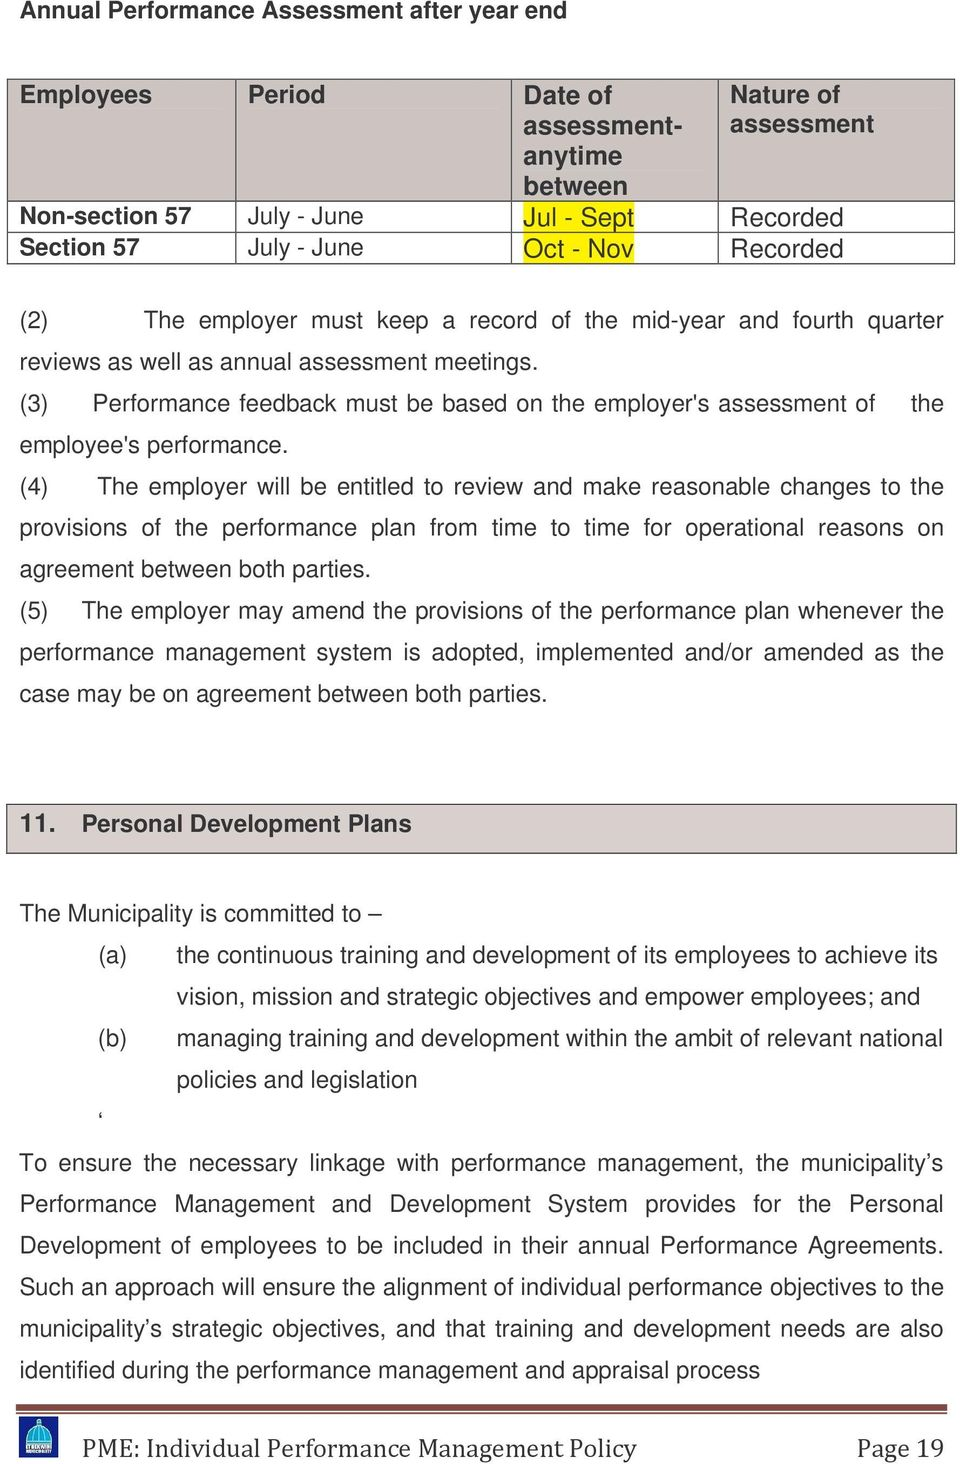 (3) Performance feedback must be based on the employer's assessment of the employee's performance.